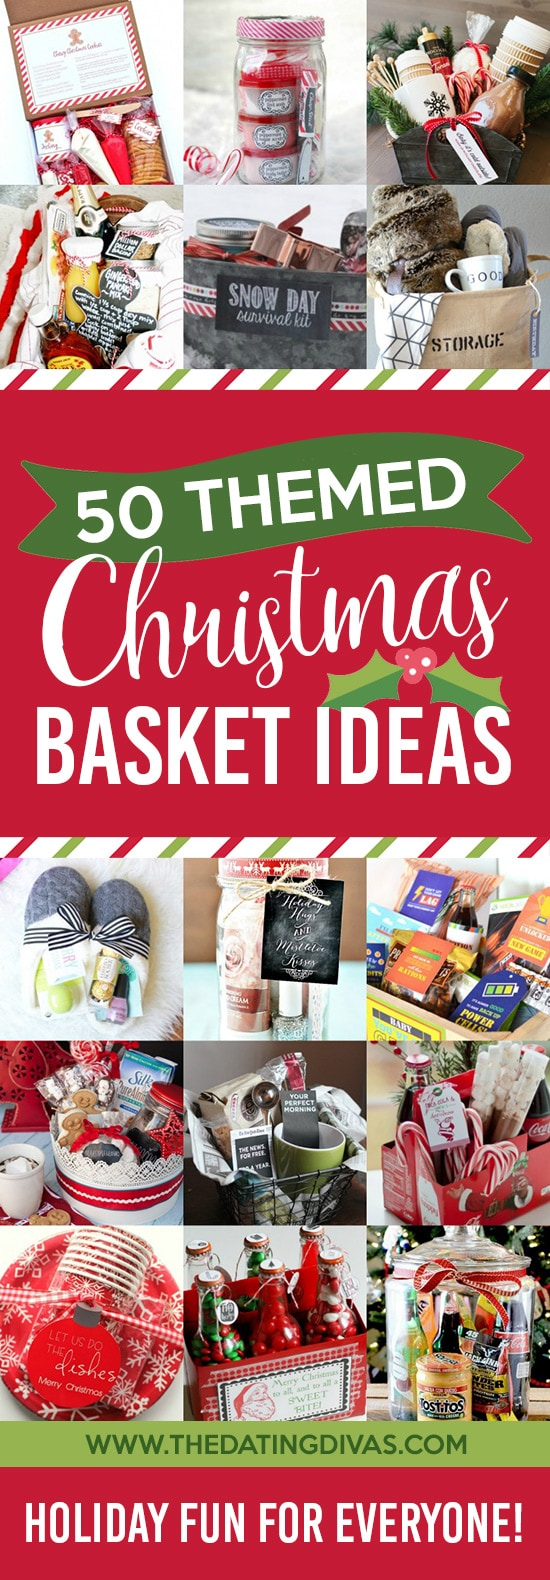 Christmas Gift Basket Ideas for Everyone - The Dating Divas